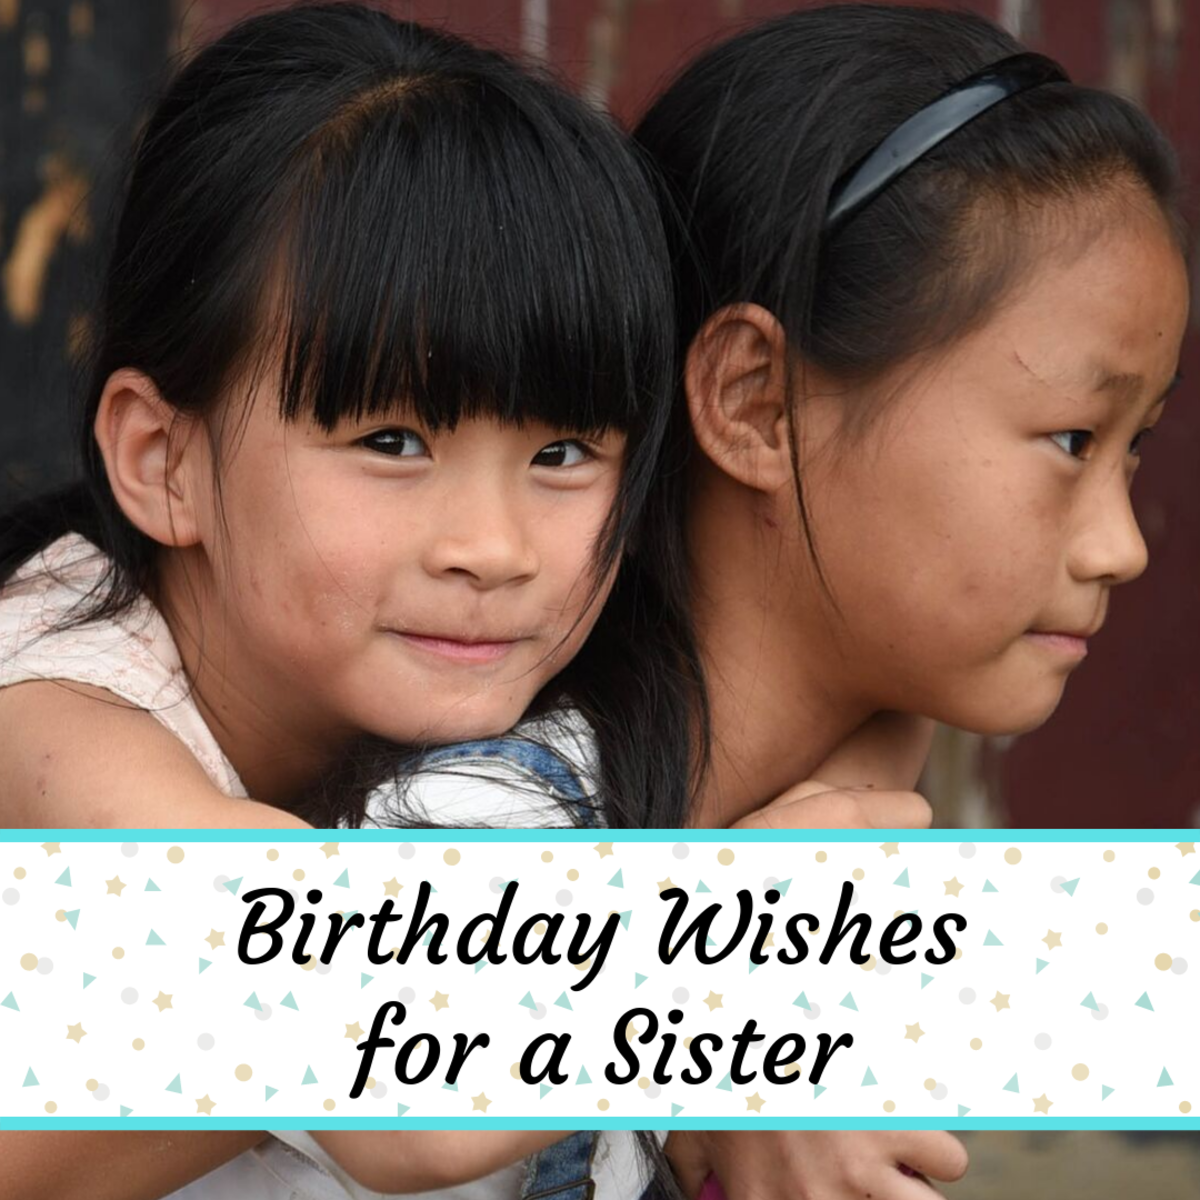 Find some special words to say to your sister on her birthday!